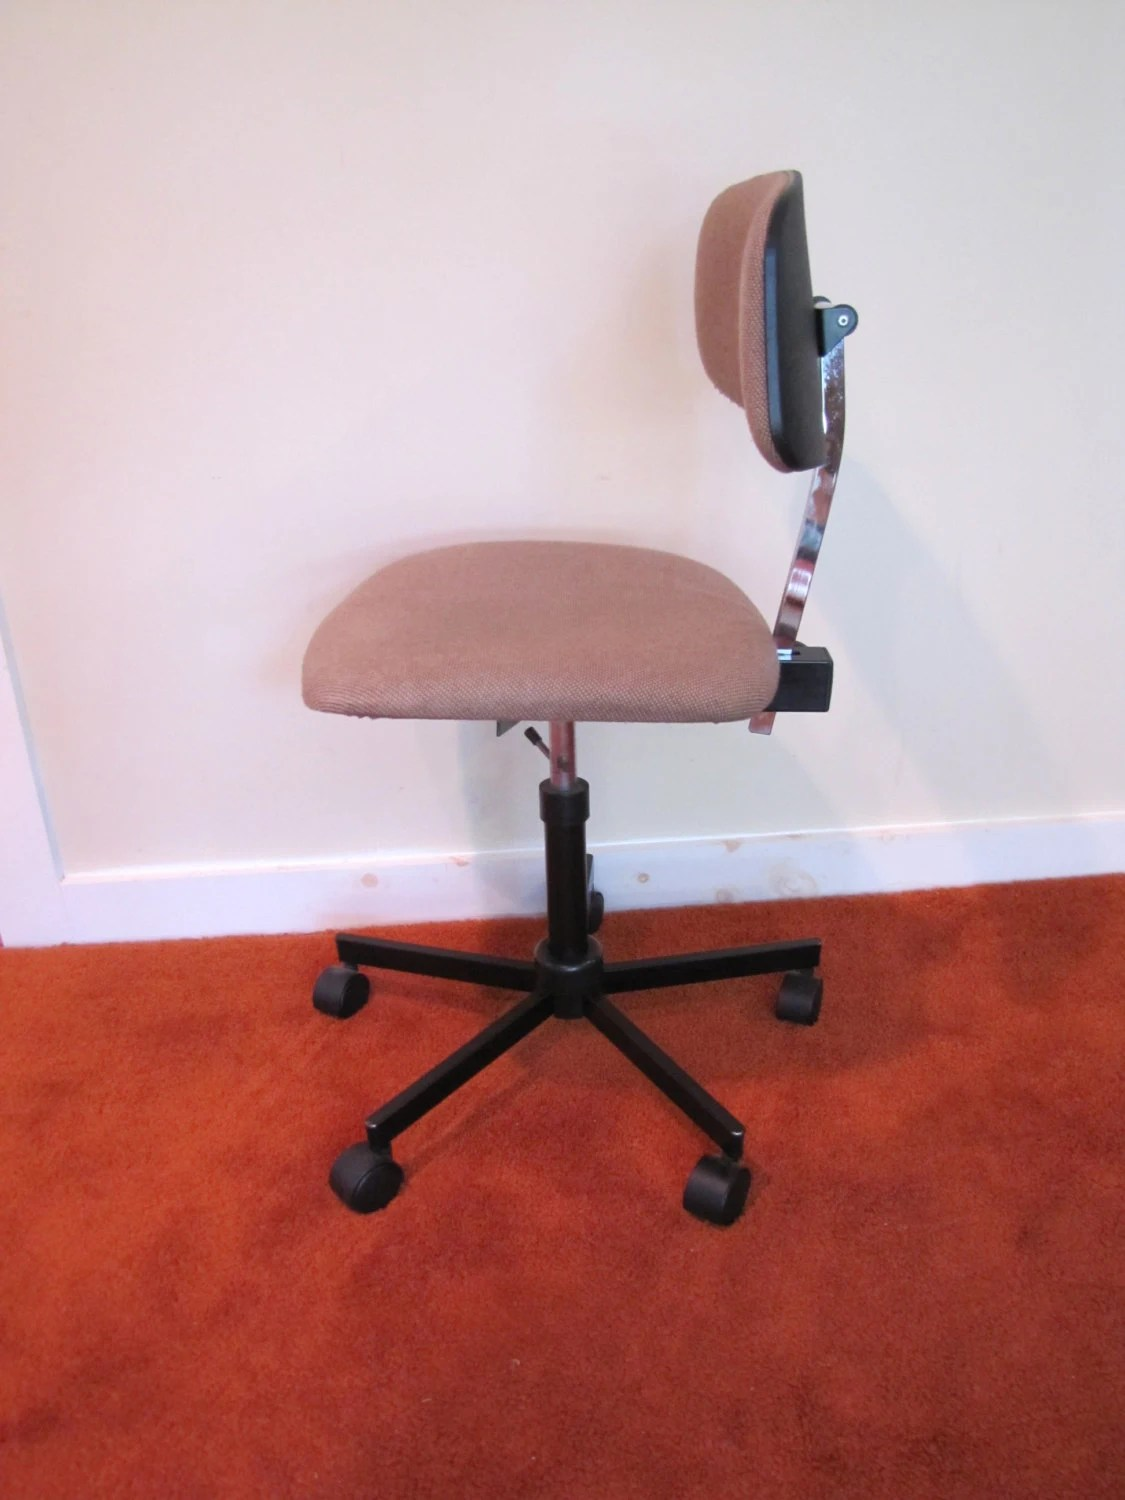 Rolling Desk Chairs Rabami Stole Office Chair Rolling Desk Chair Made In